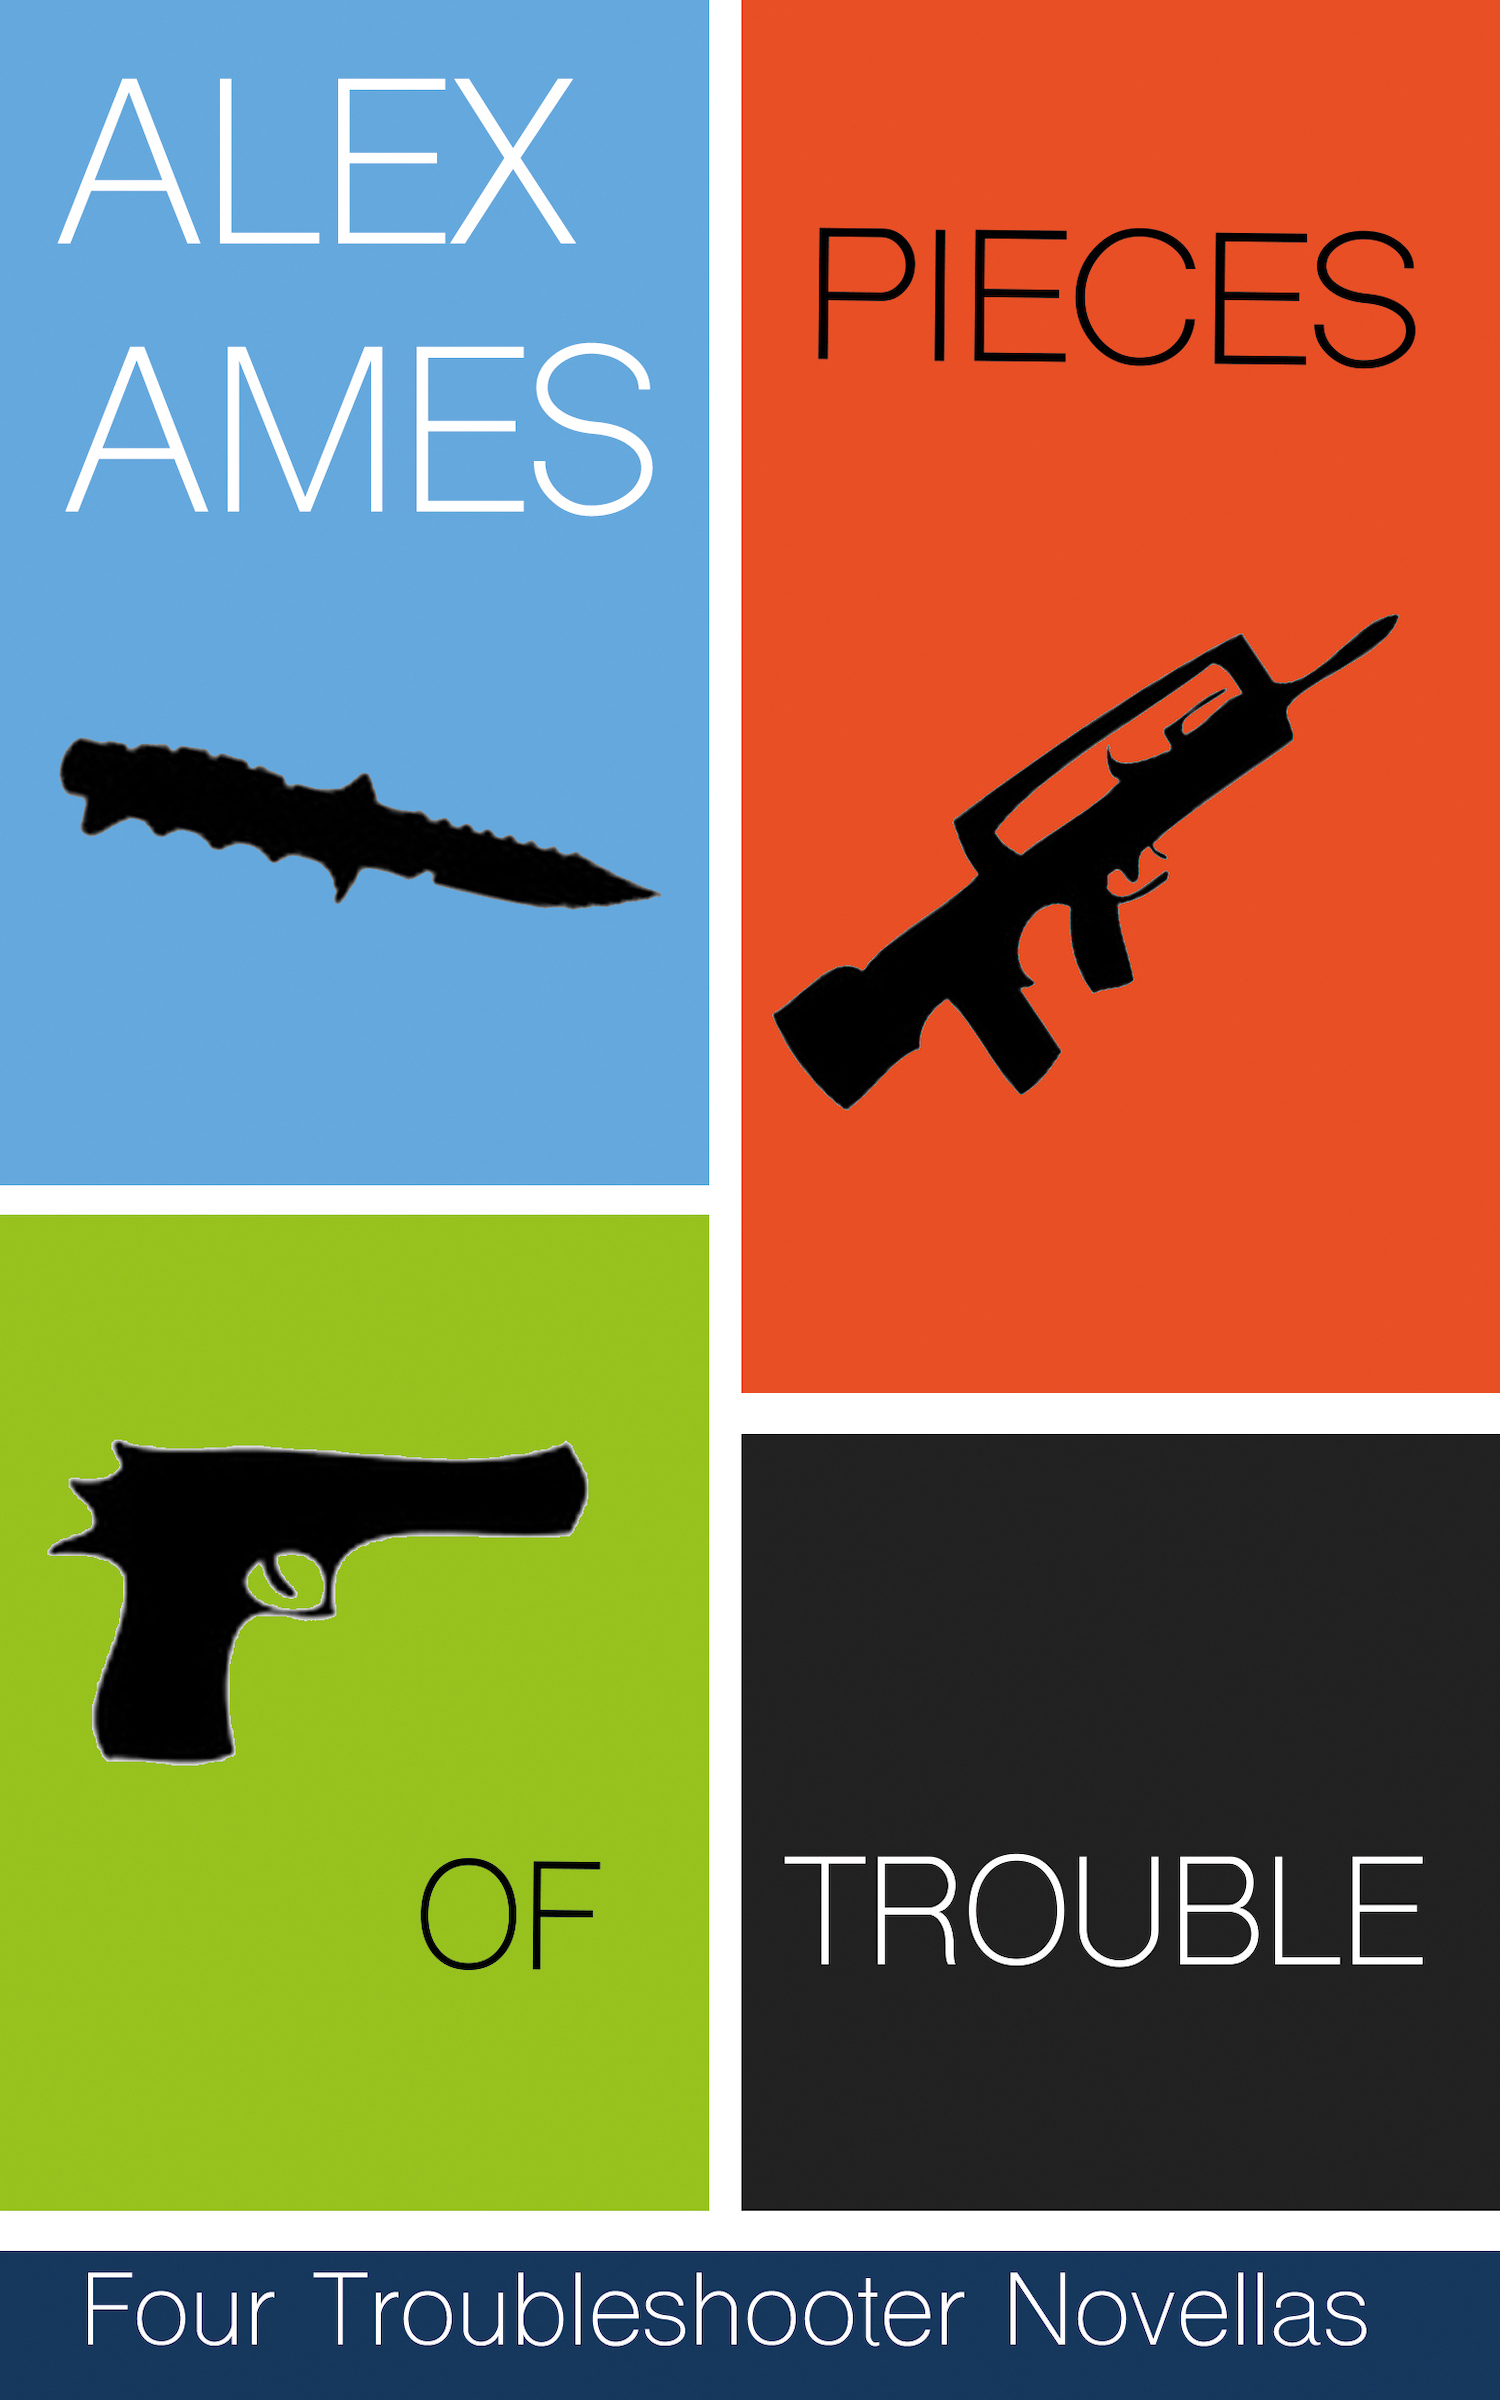 Pieces of Trouble